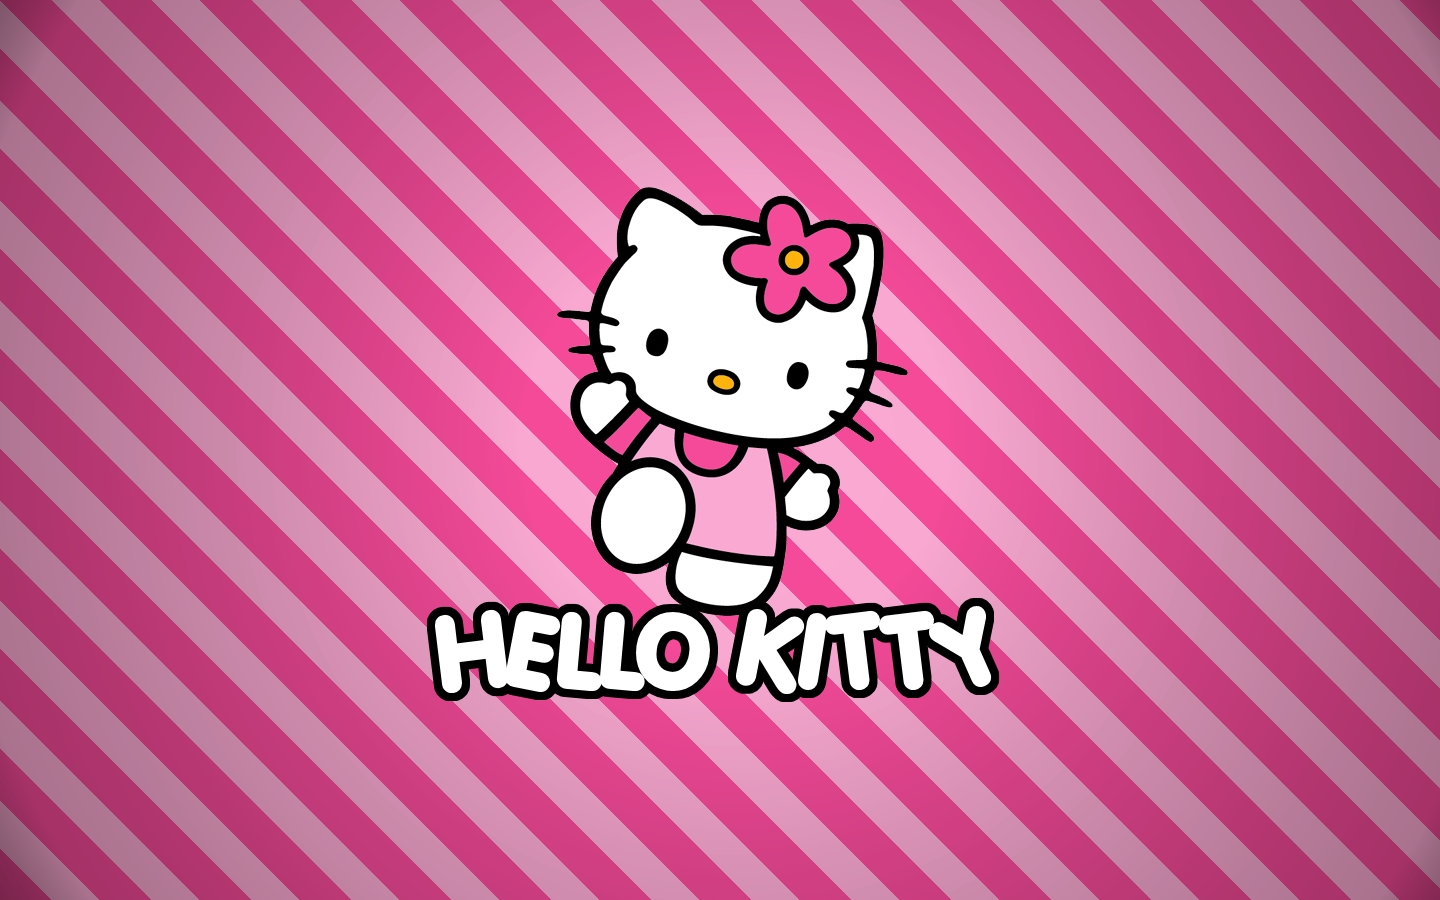 hello kitty wallpapers hd group (73+)